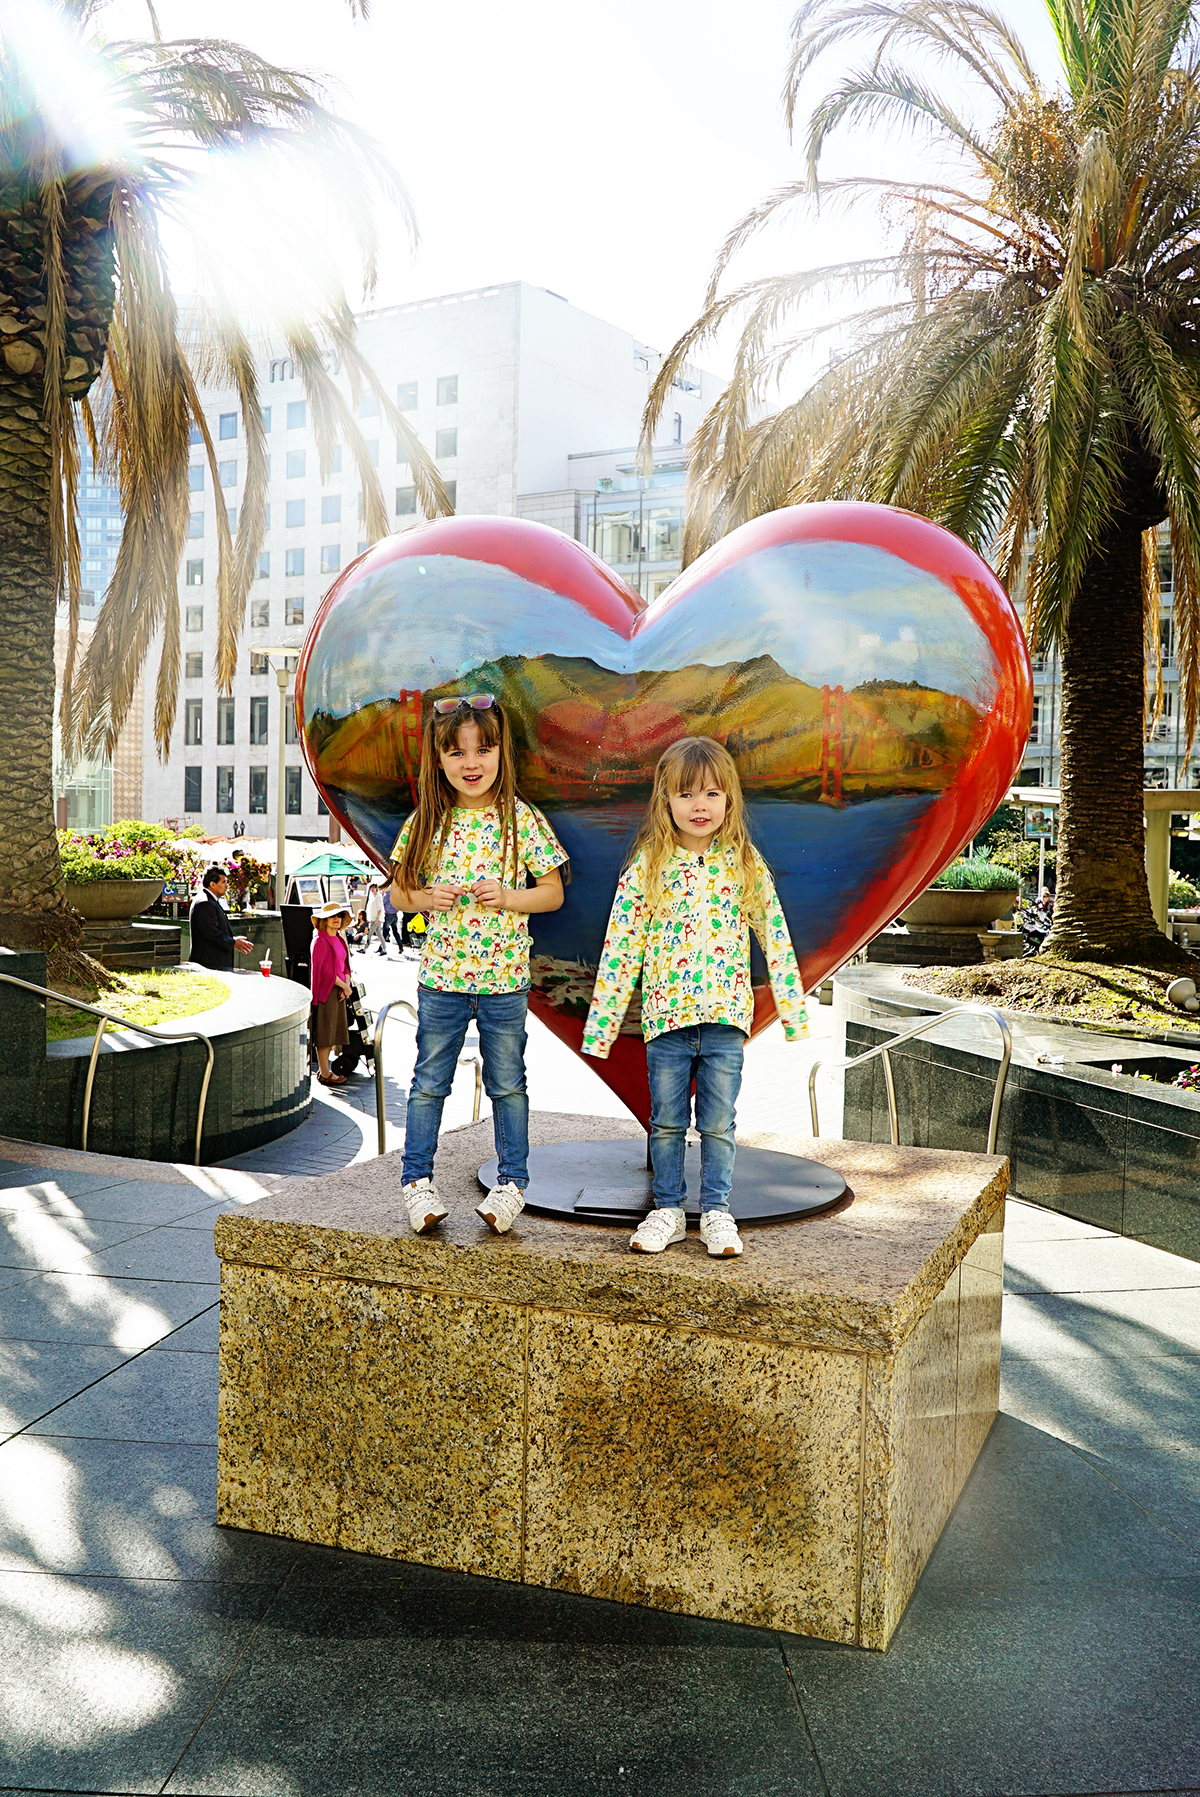 Our California Family Road Trip: Home to San Francisco